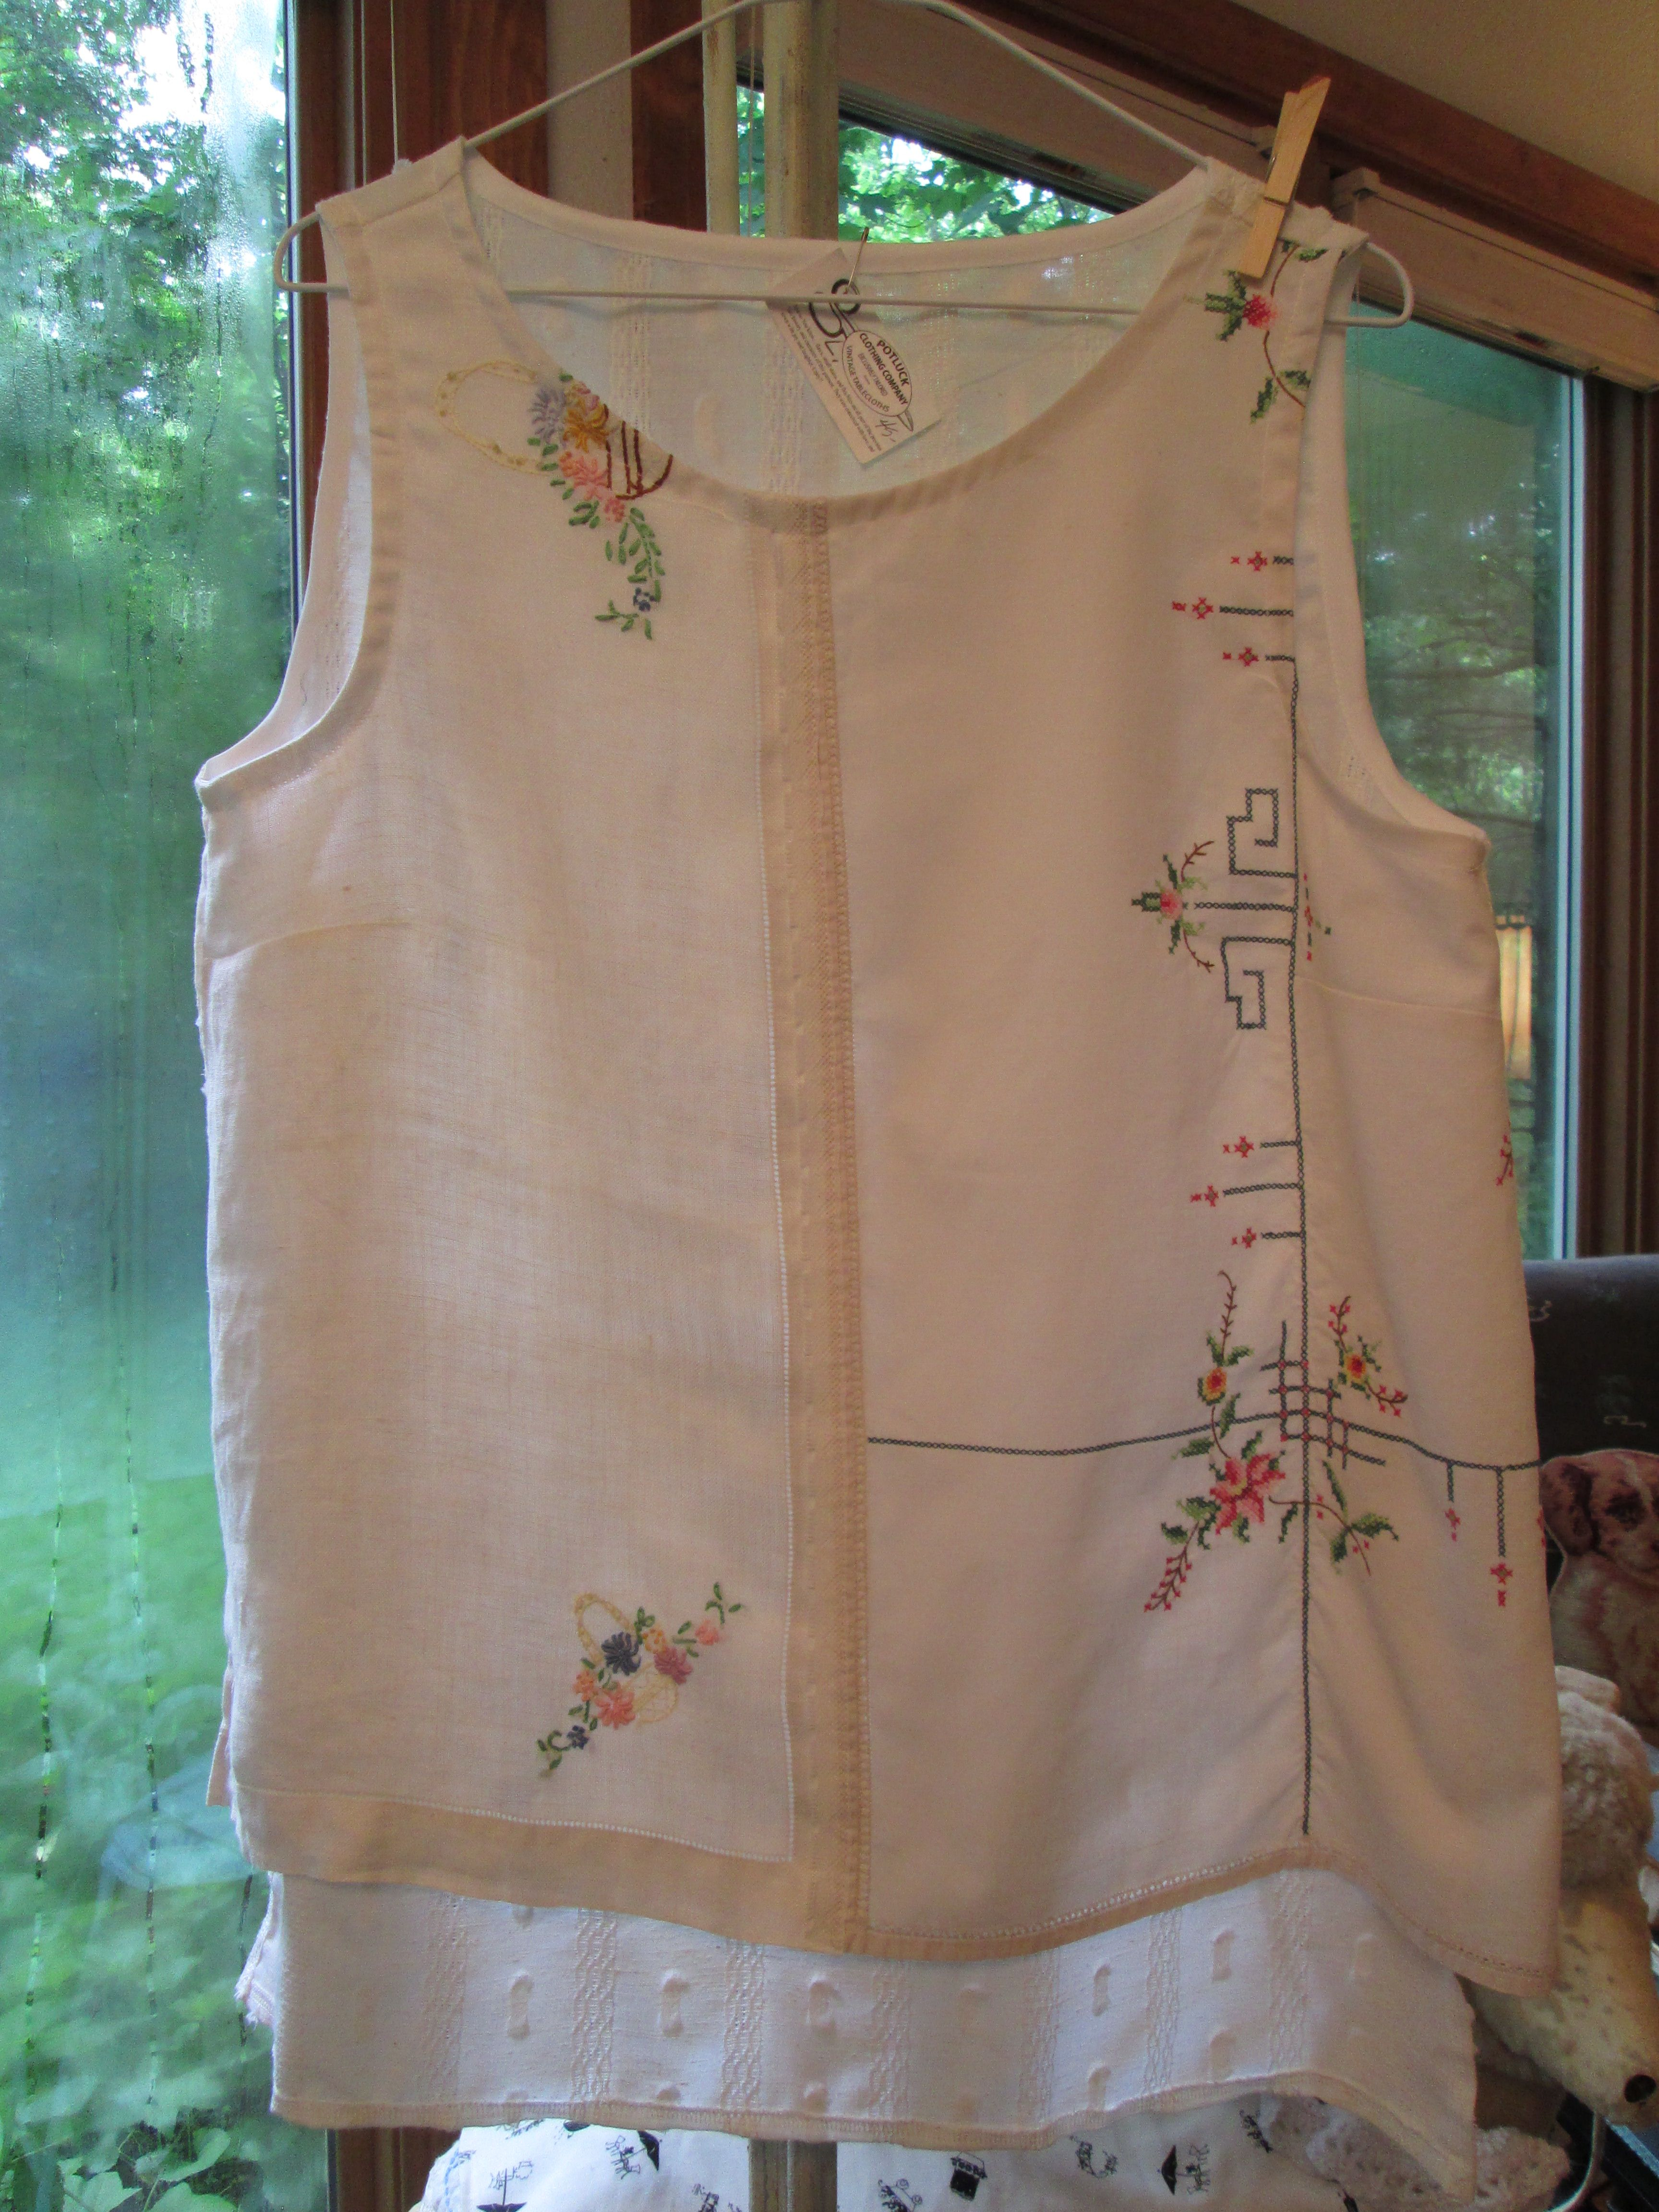 A story of vintage linens om the potluck clothing